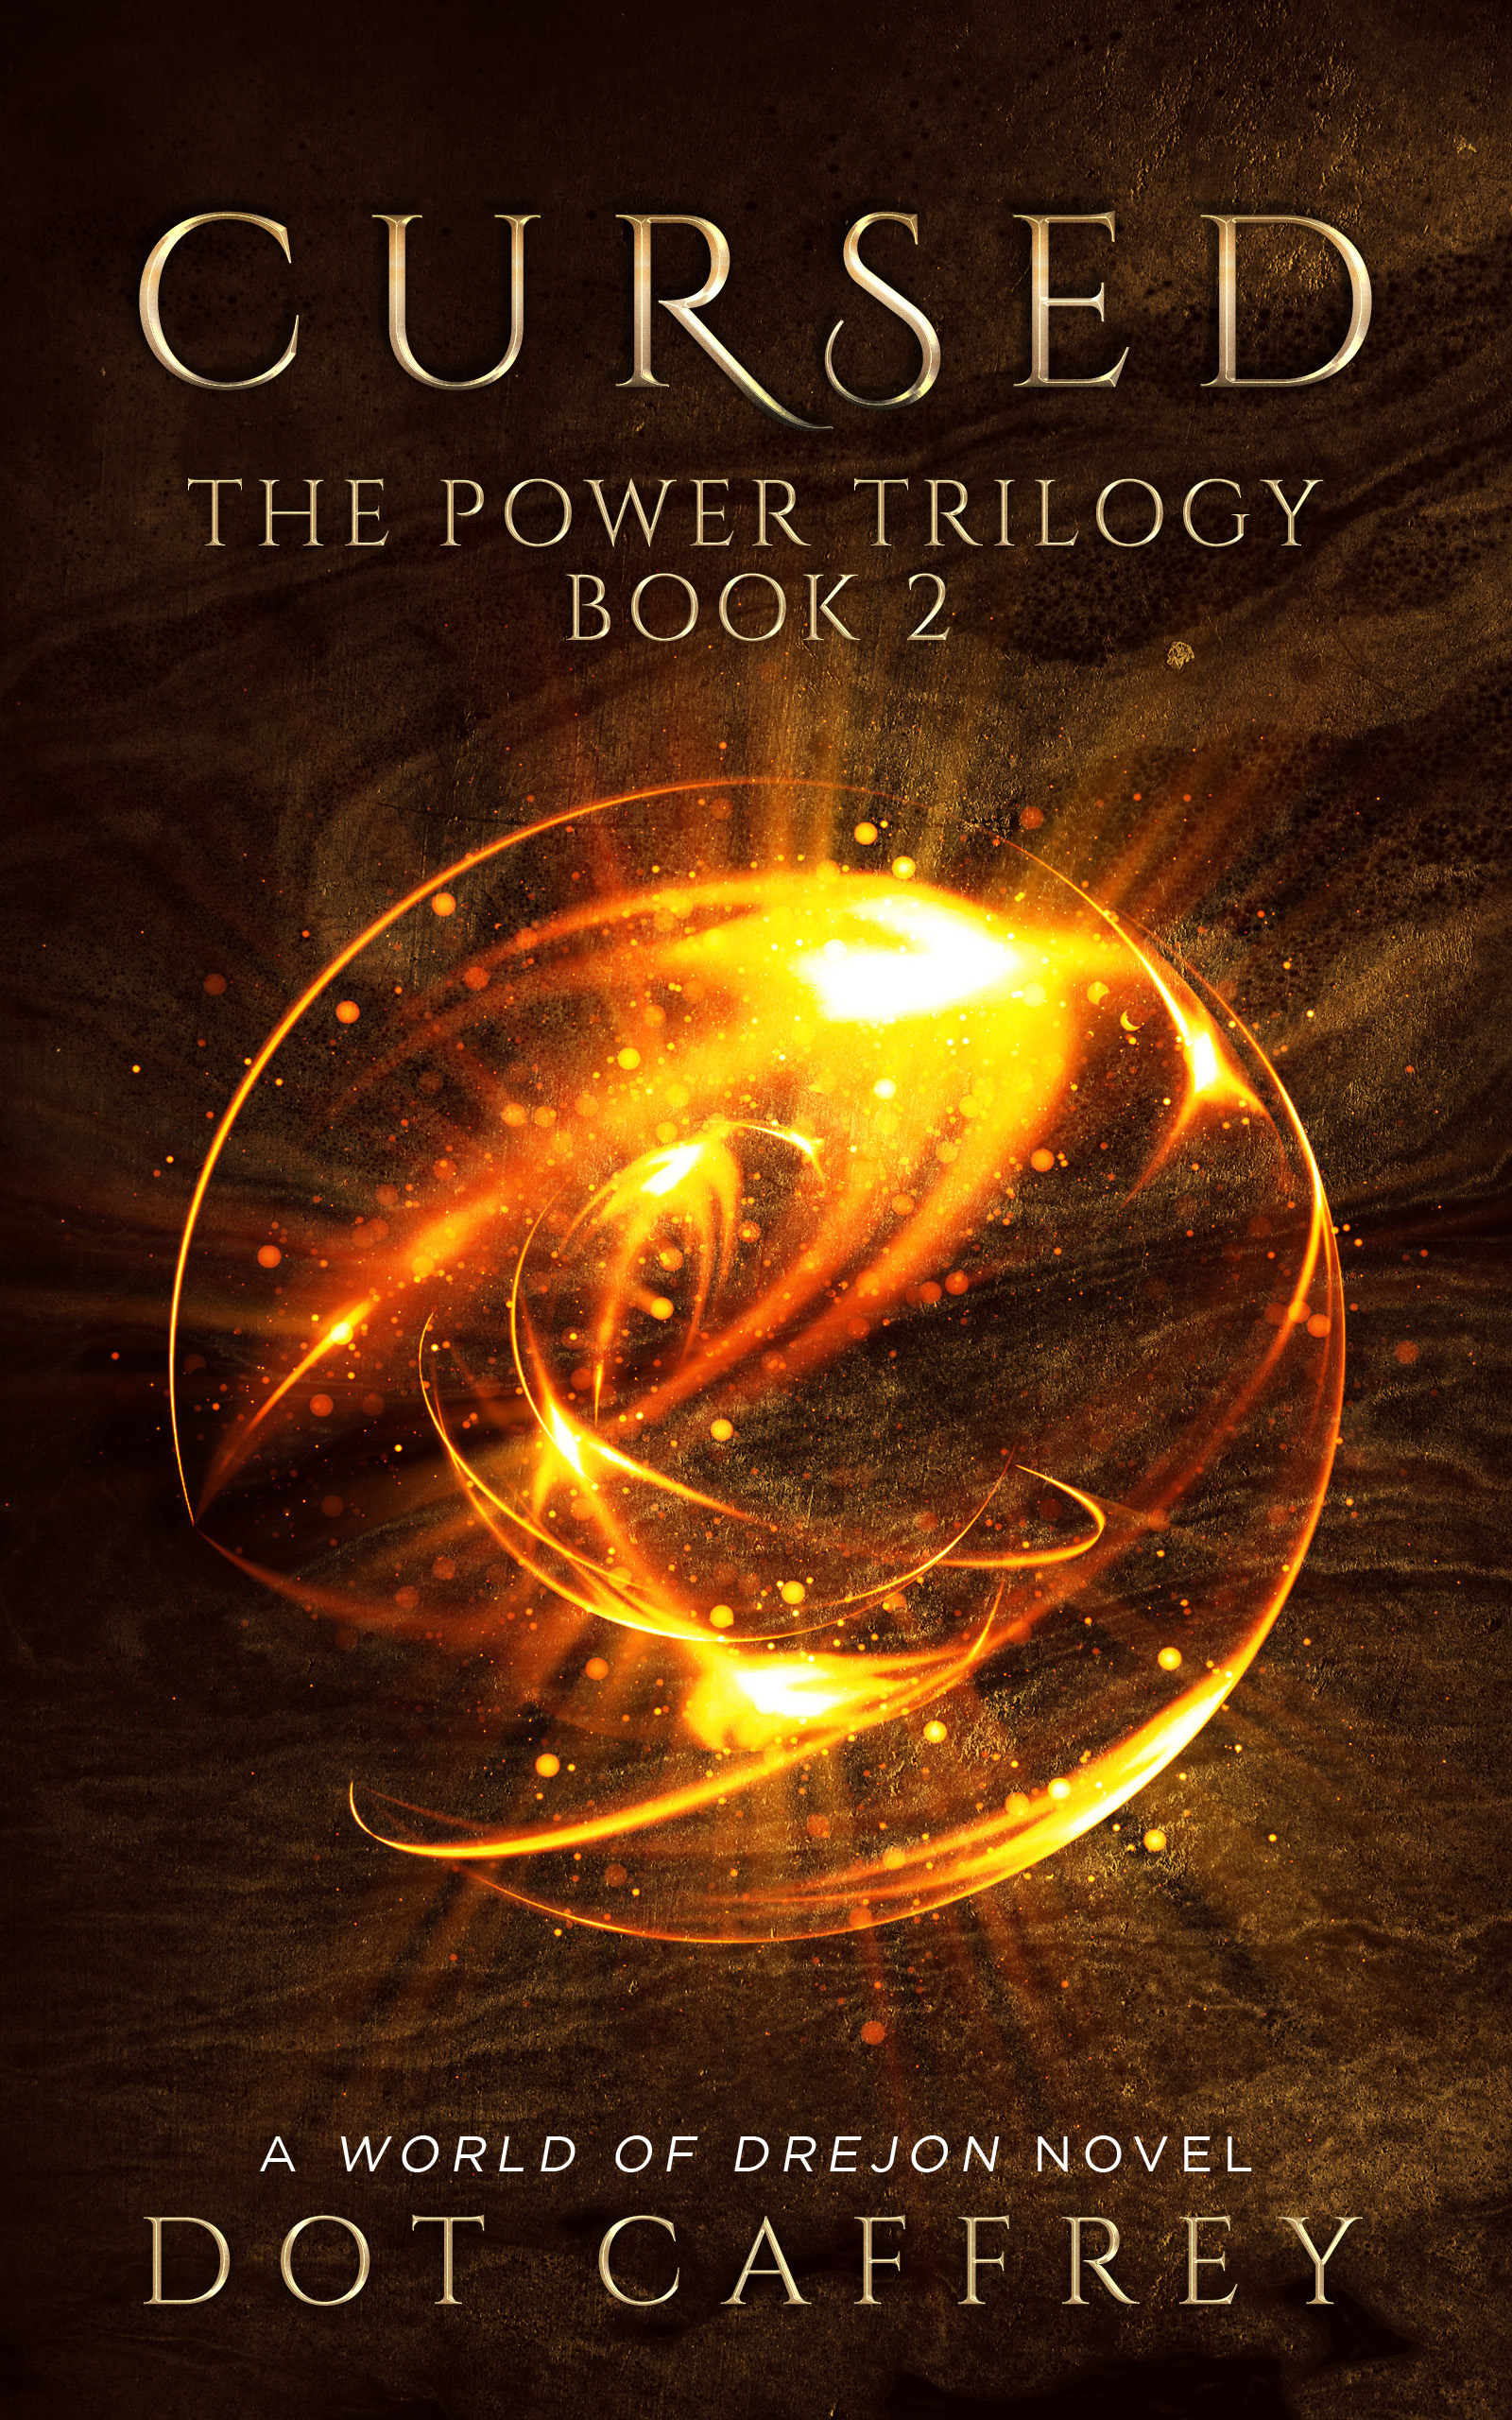 CURSED-The-Power-Trilogy-Book-2-002